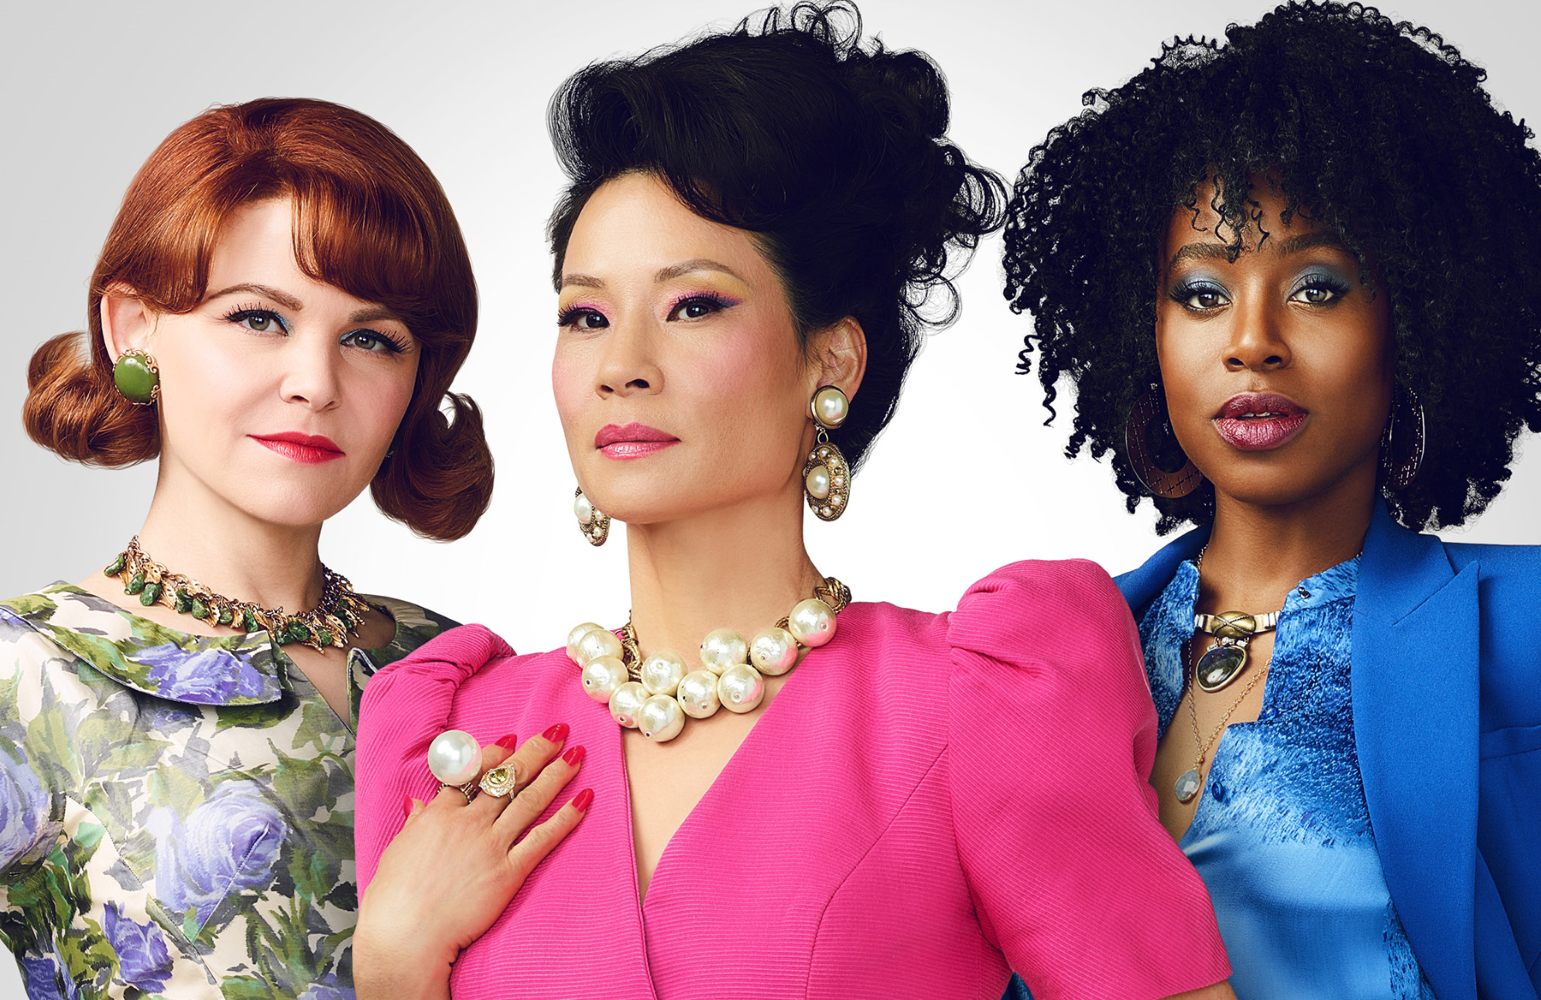 Ginnifer Goodwin, Lucy Liu, and Kirby Howell-Baptiste star in Why Women Kill (CBS All Access)